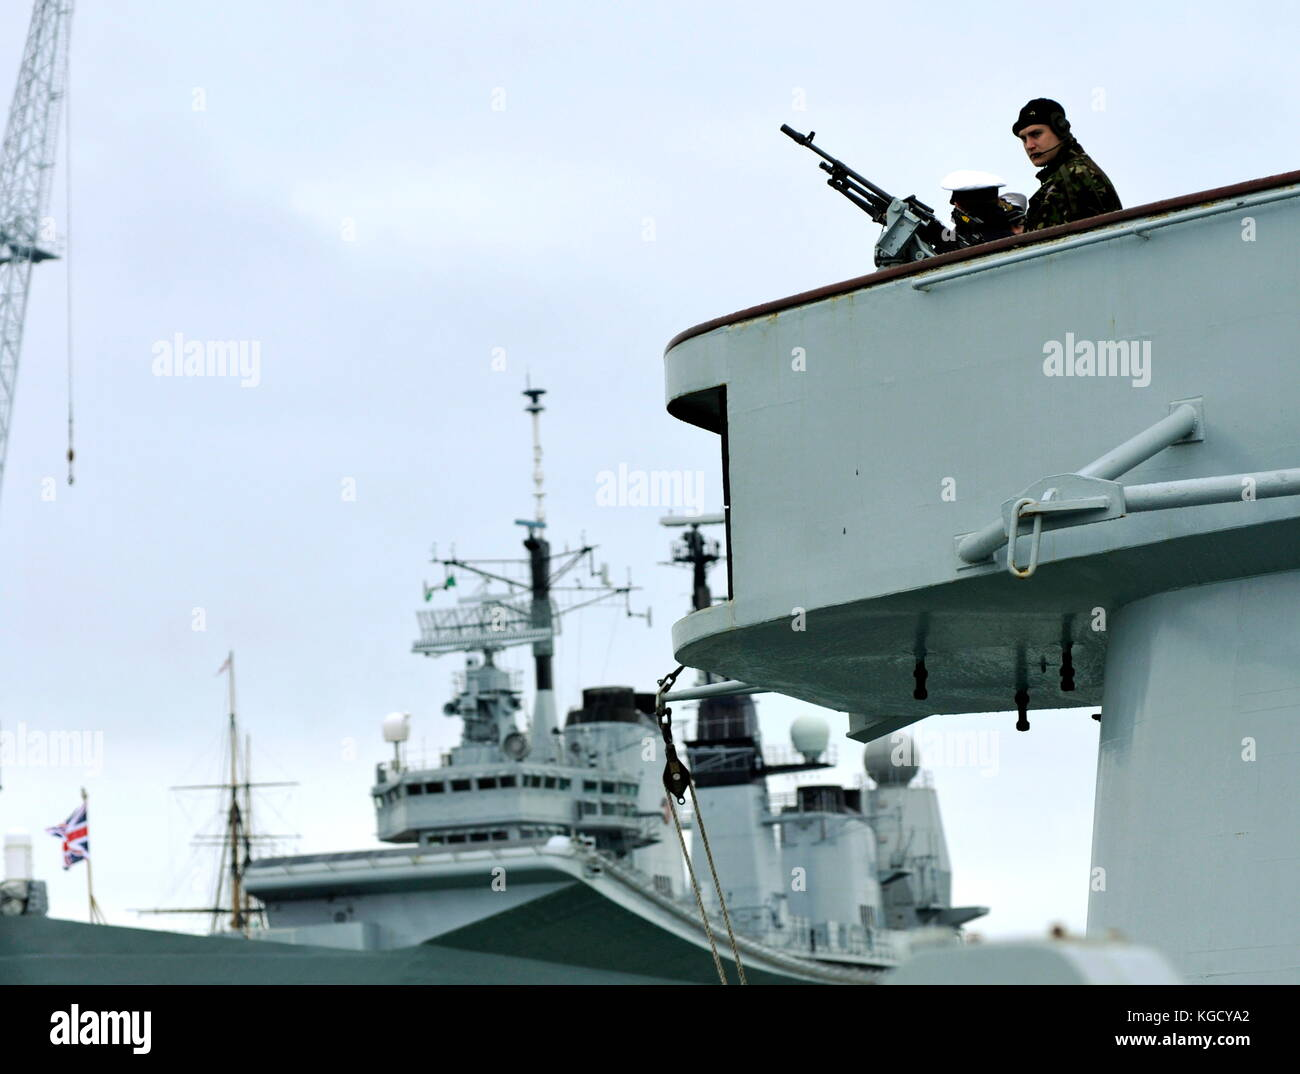 AJAXNETPHOTO. PORTSMOUTH, ENGLAND. - SECURITY LOOK-OUT - A ROYAL MARINE MANS A MACHINE GUN ON THE BRIDGE WING OF - Stock Image